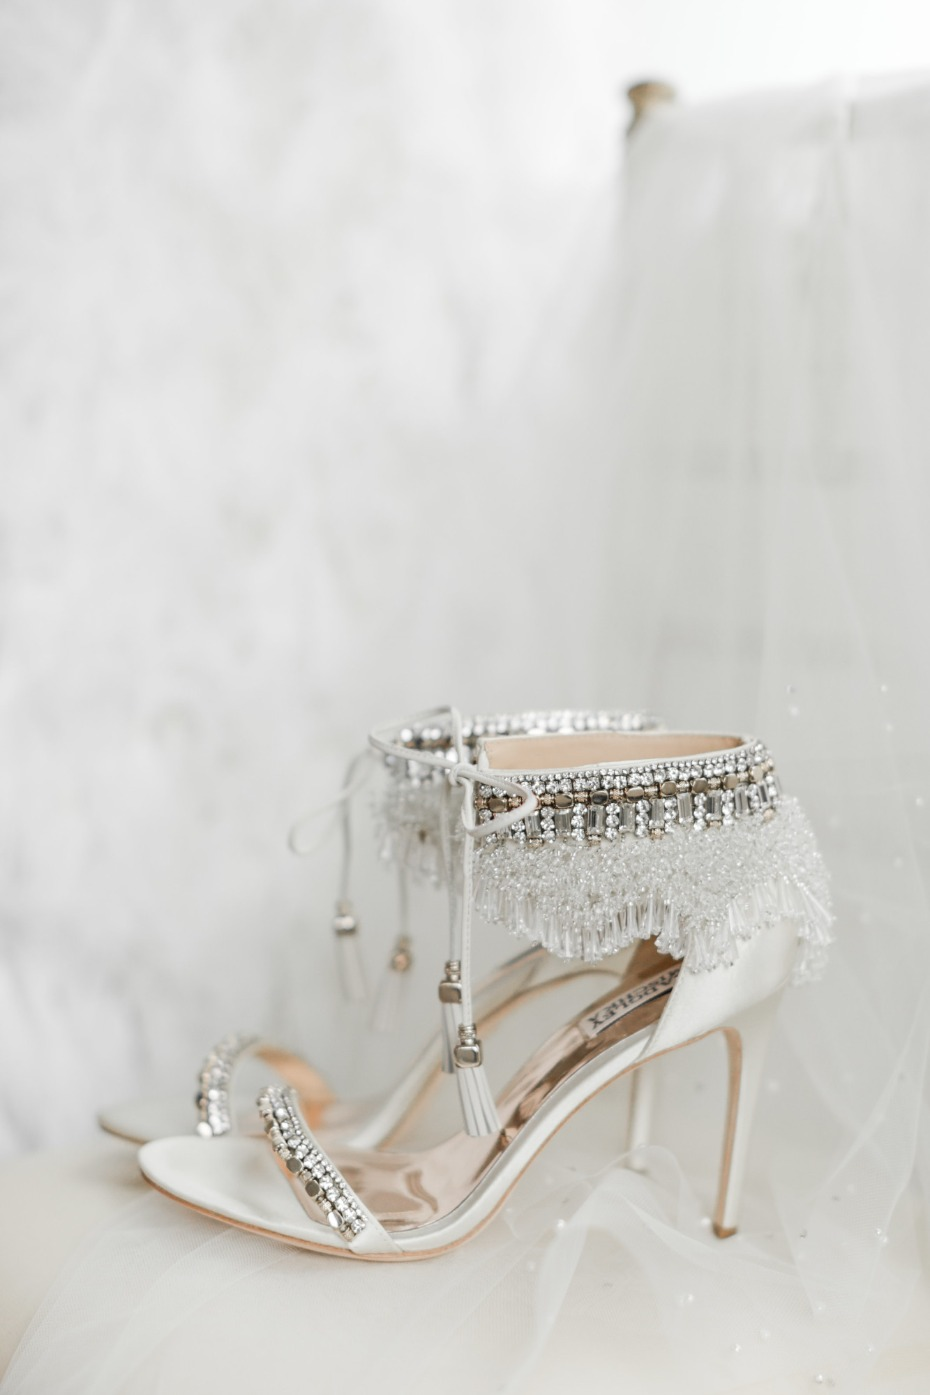 Bride heels from Badgley Mischka